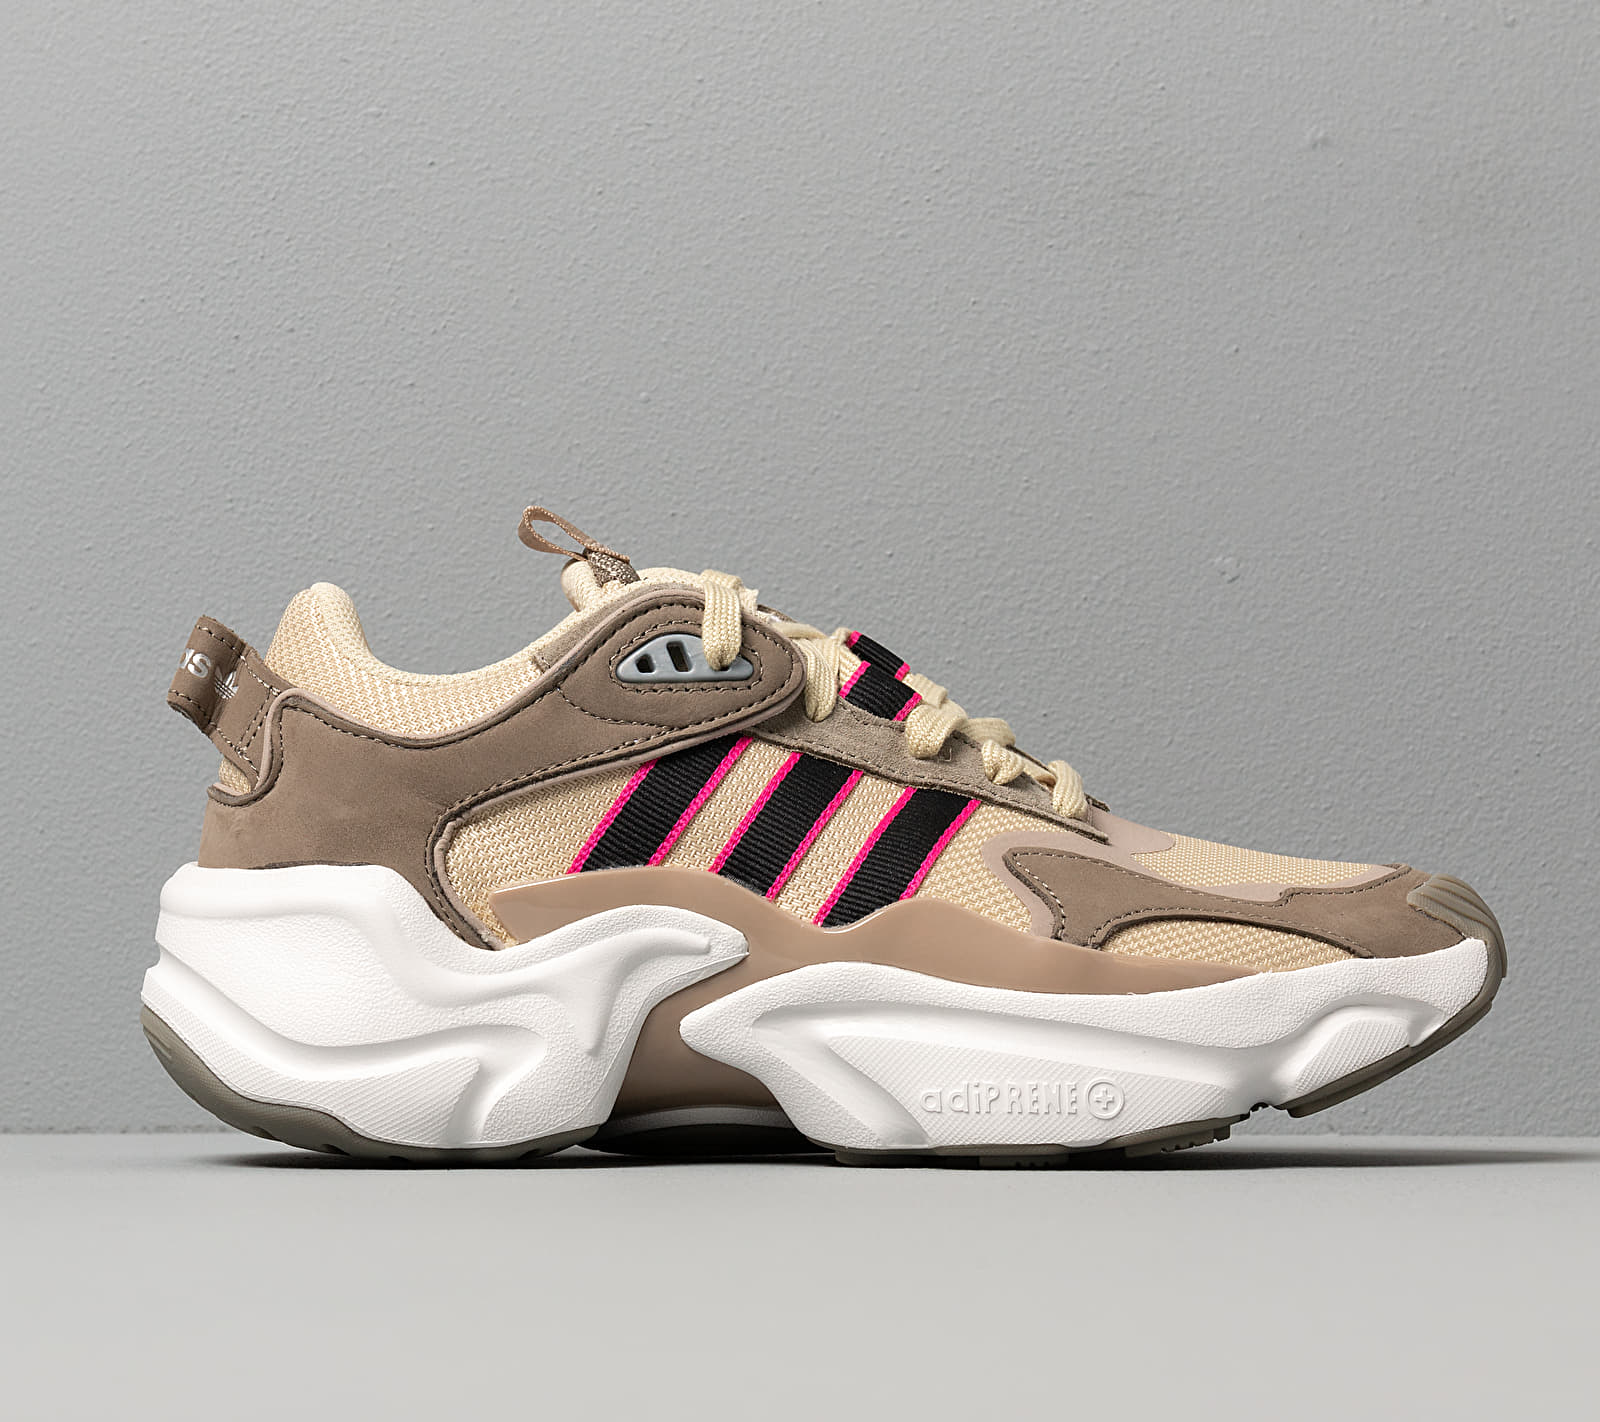 adidas Magmur Runner W Stdesa/ Core Black/ Trace Cargo, Brown